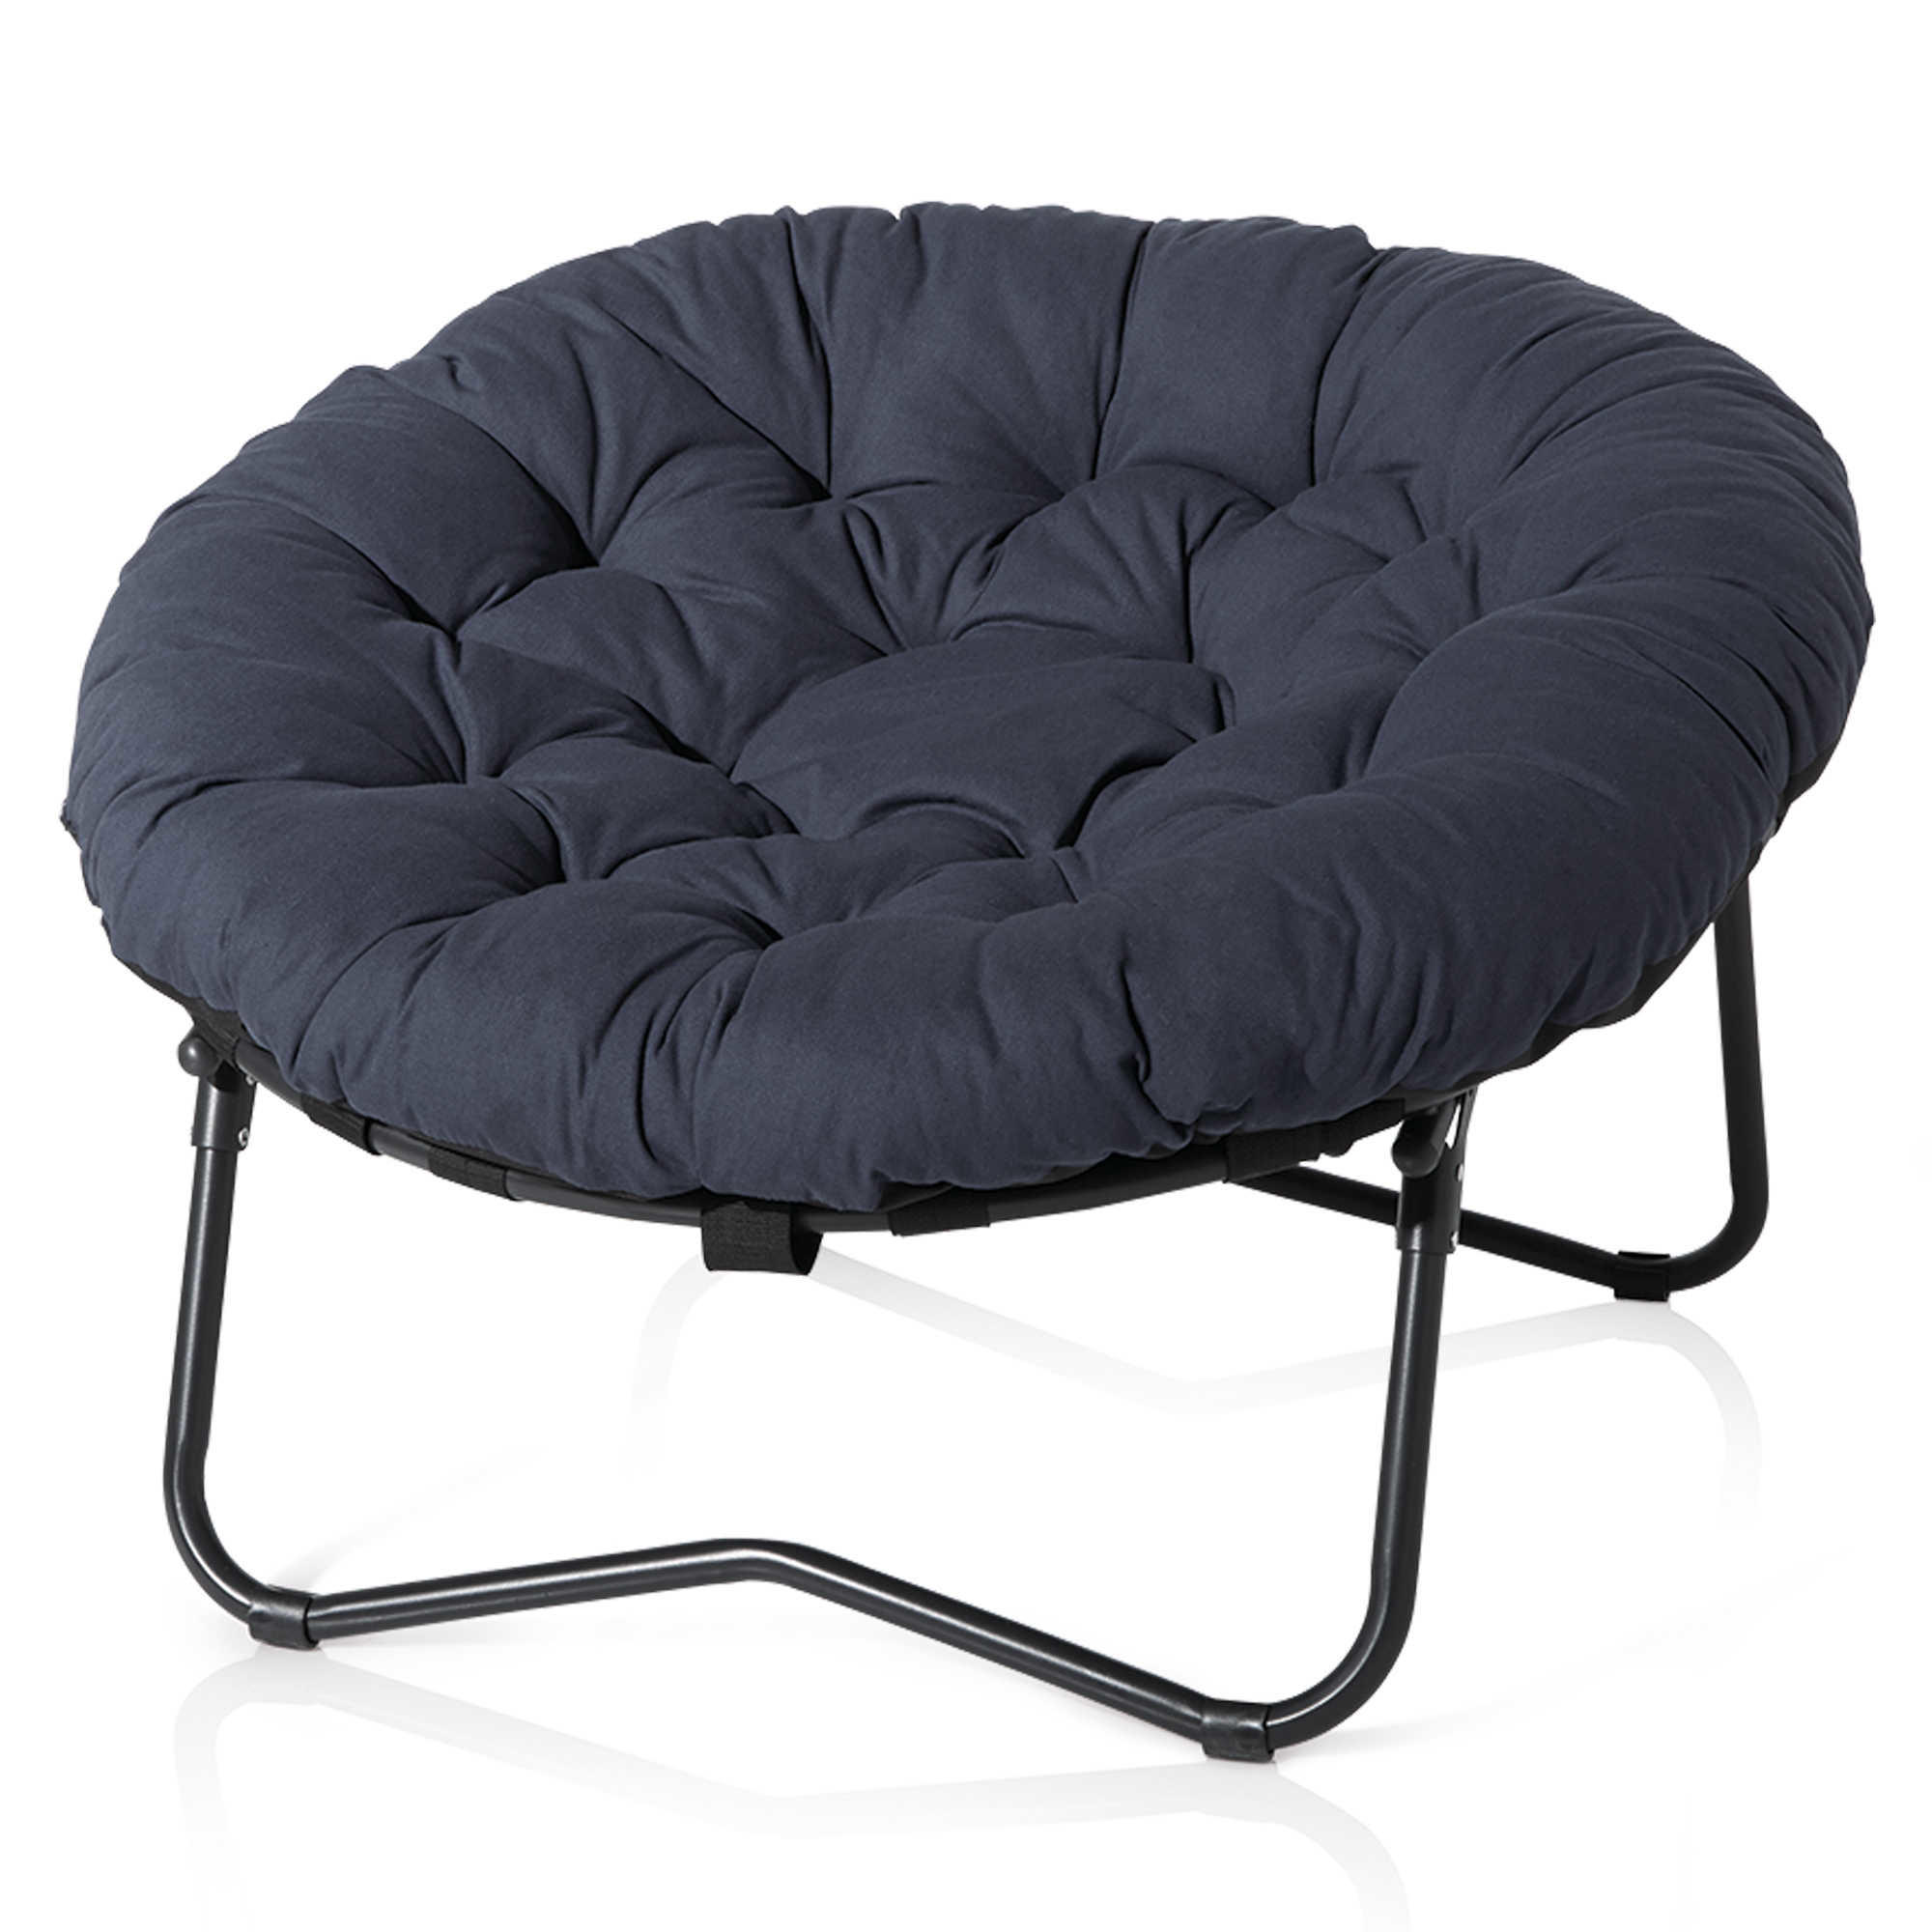 Foldable Papasan Chair Foldable Oversized Papasan Chair In From Bed Bath And Beyond